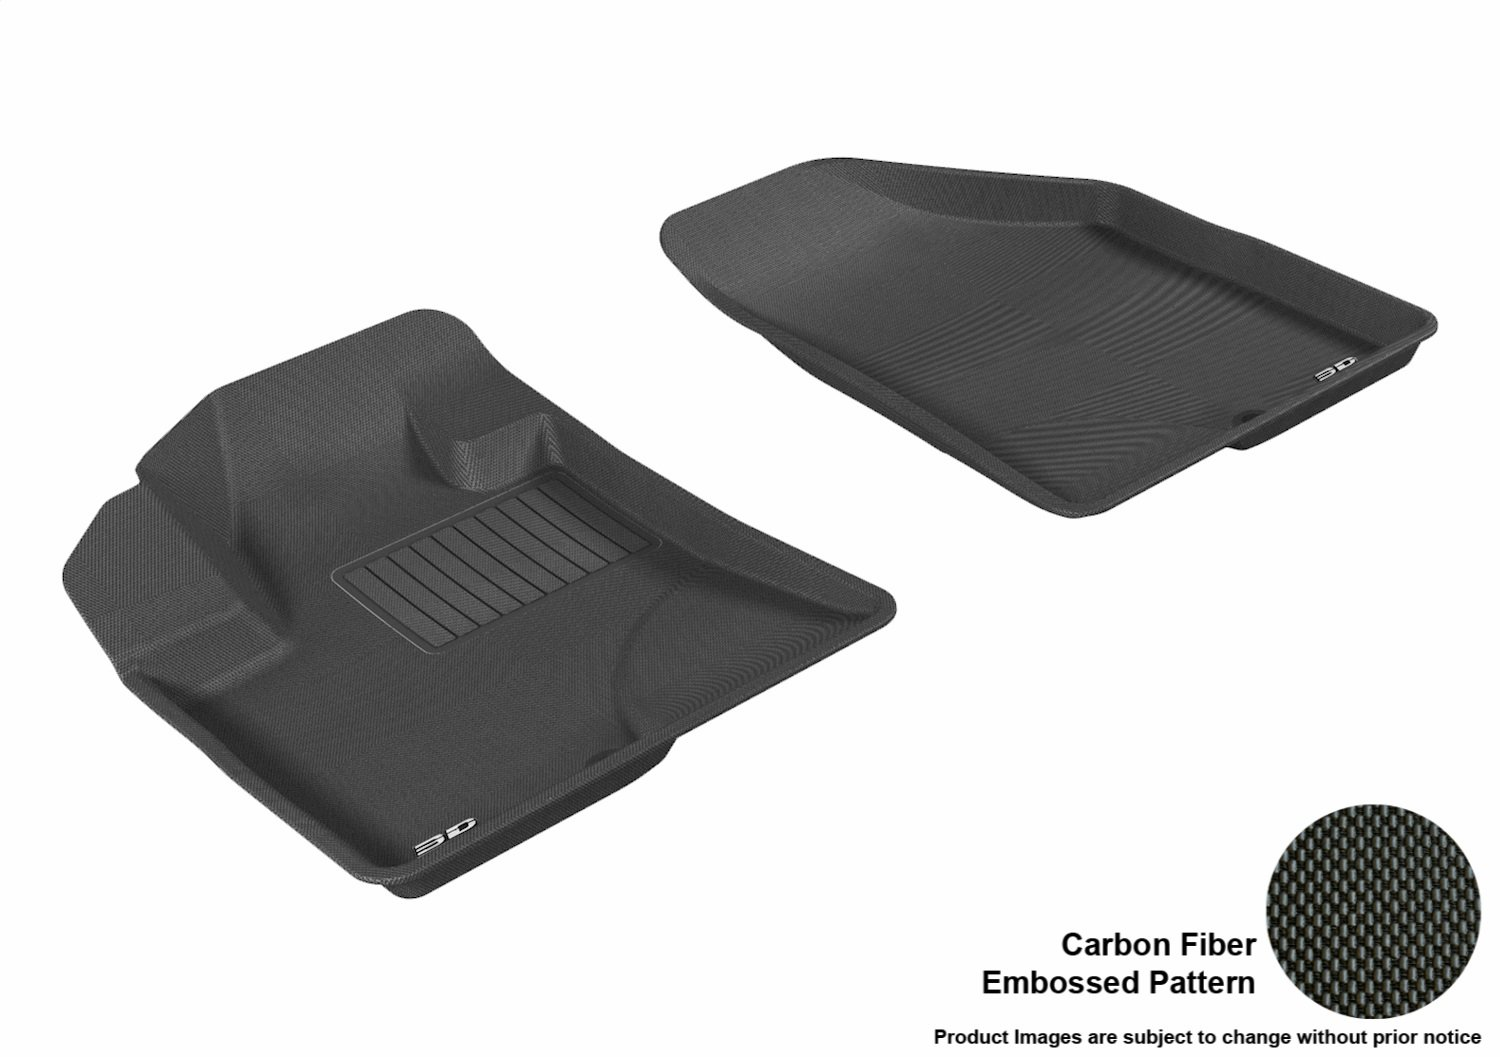 3D MAXpider Second Row Custom Fit All-Weather Floor Mat for Select Hyundai Veracruz Models Black Kagu Rubber L1HY00821509